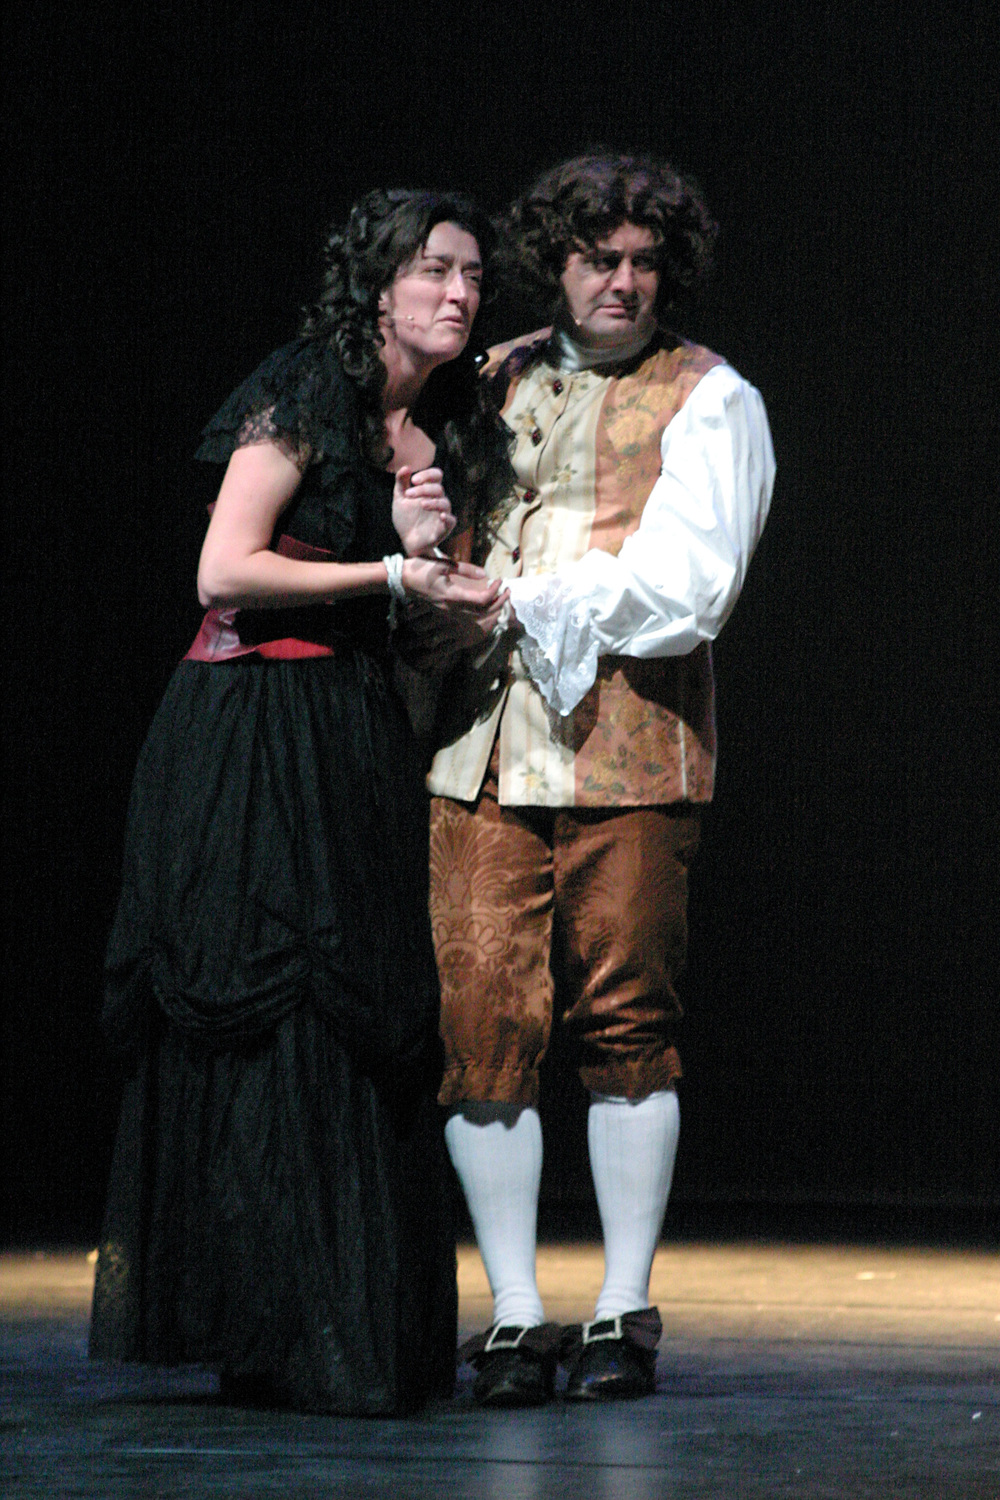 097 - The Scarlet Pimpernel 2005 - Generale.jpg